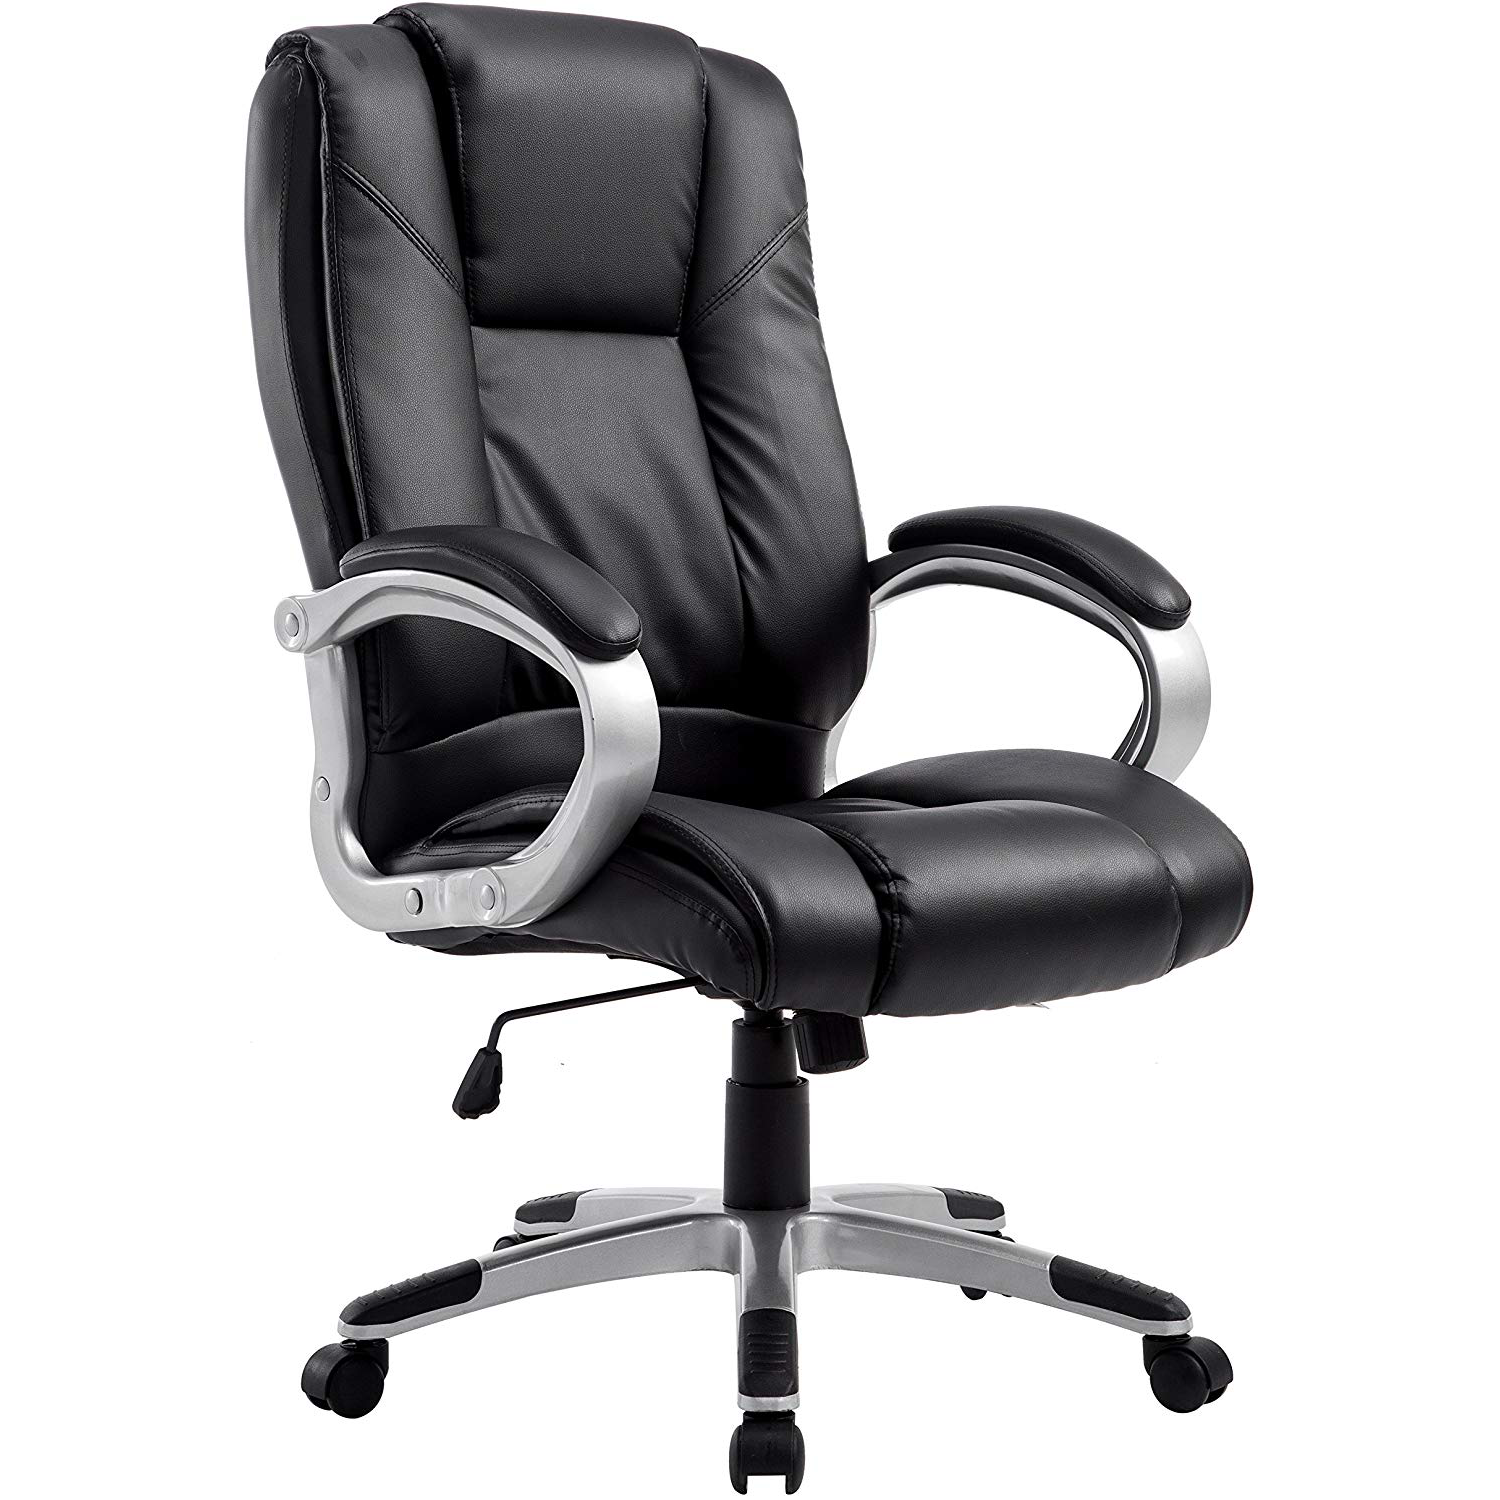 Cherry Tree Furniture High Back PU Leather Executive Swivel Office Chair, MO59 Black